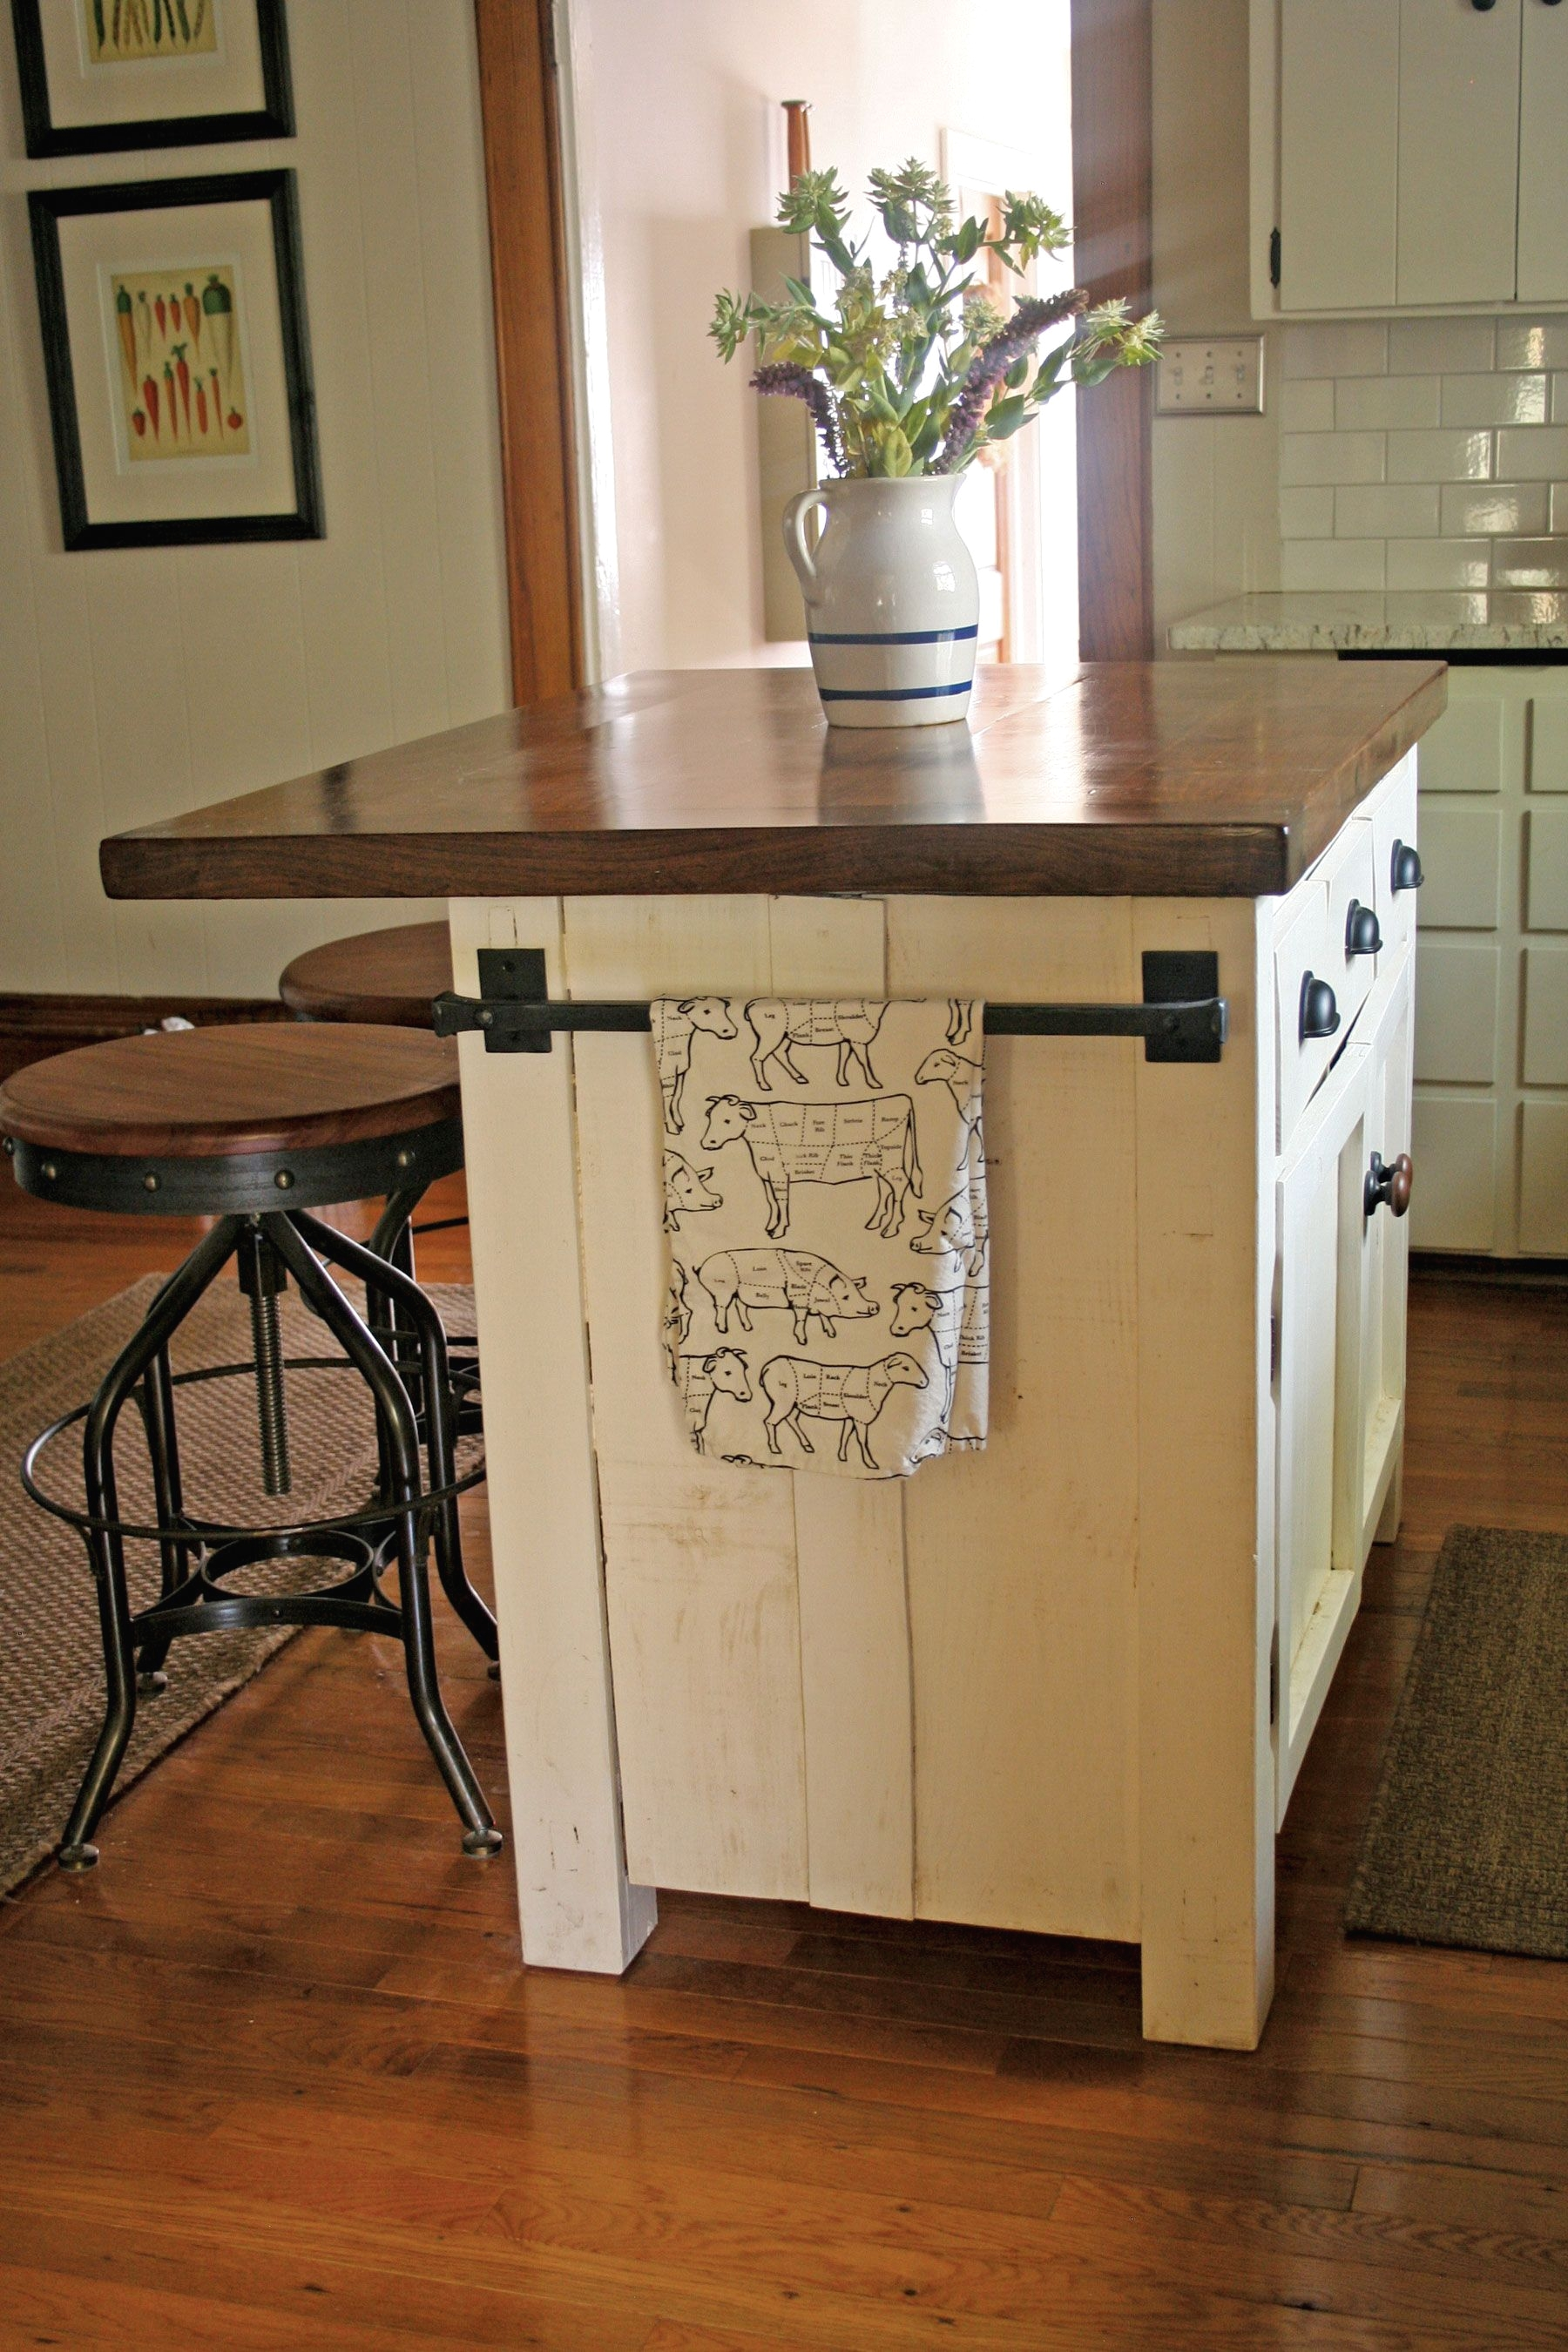 30 portable kitchen island bar that look marvelous for your home